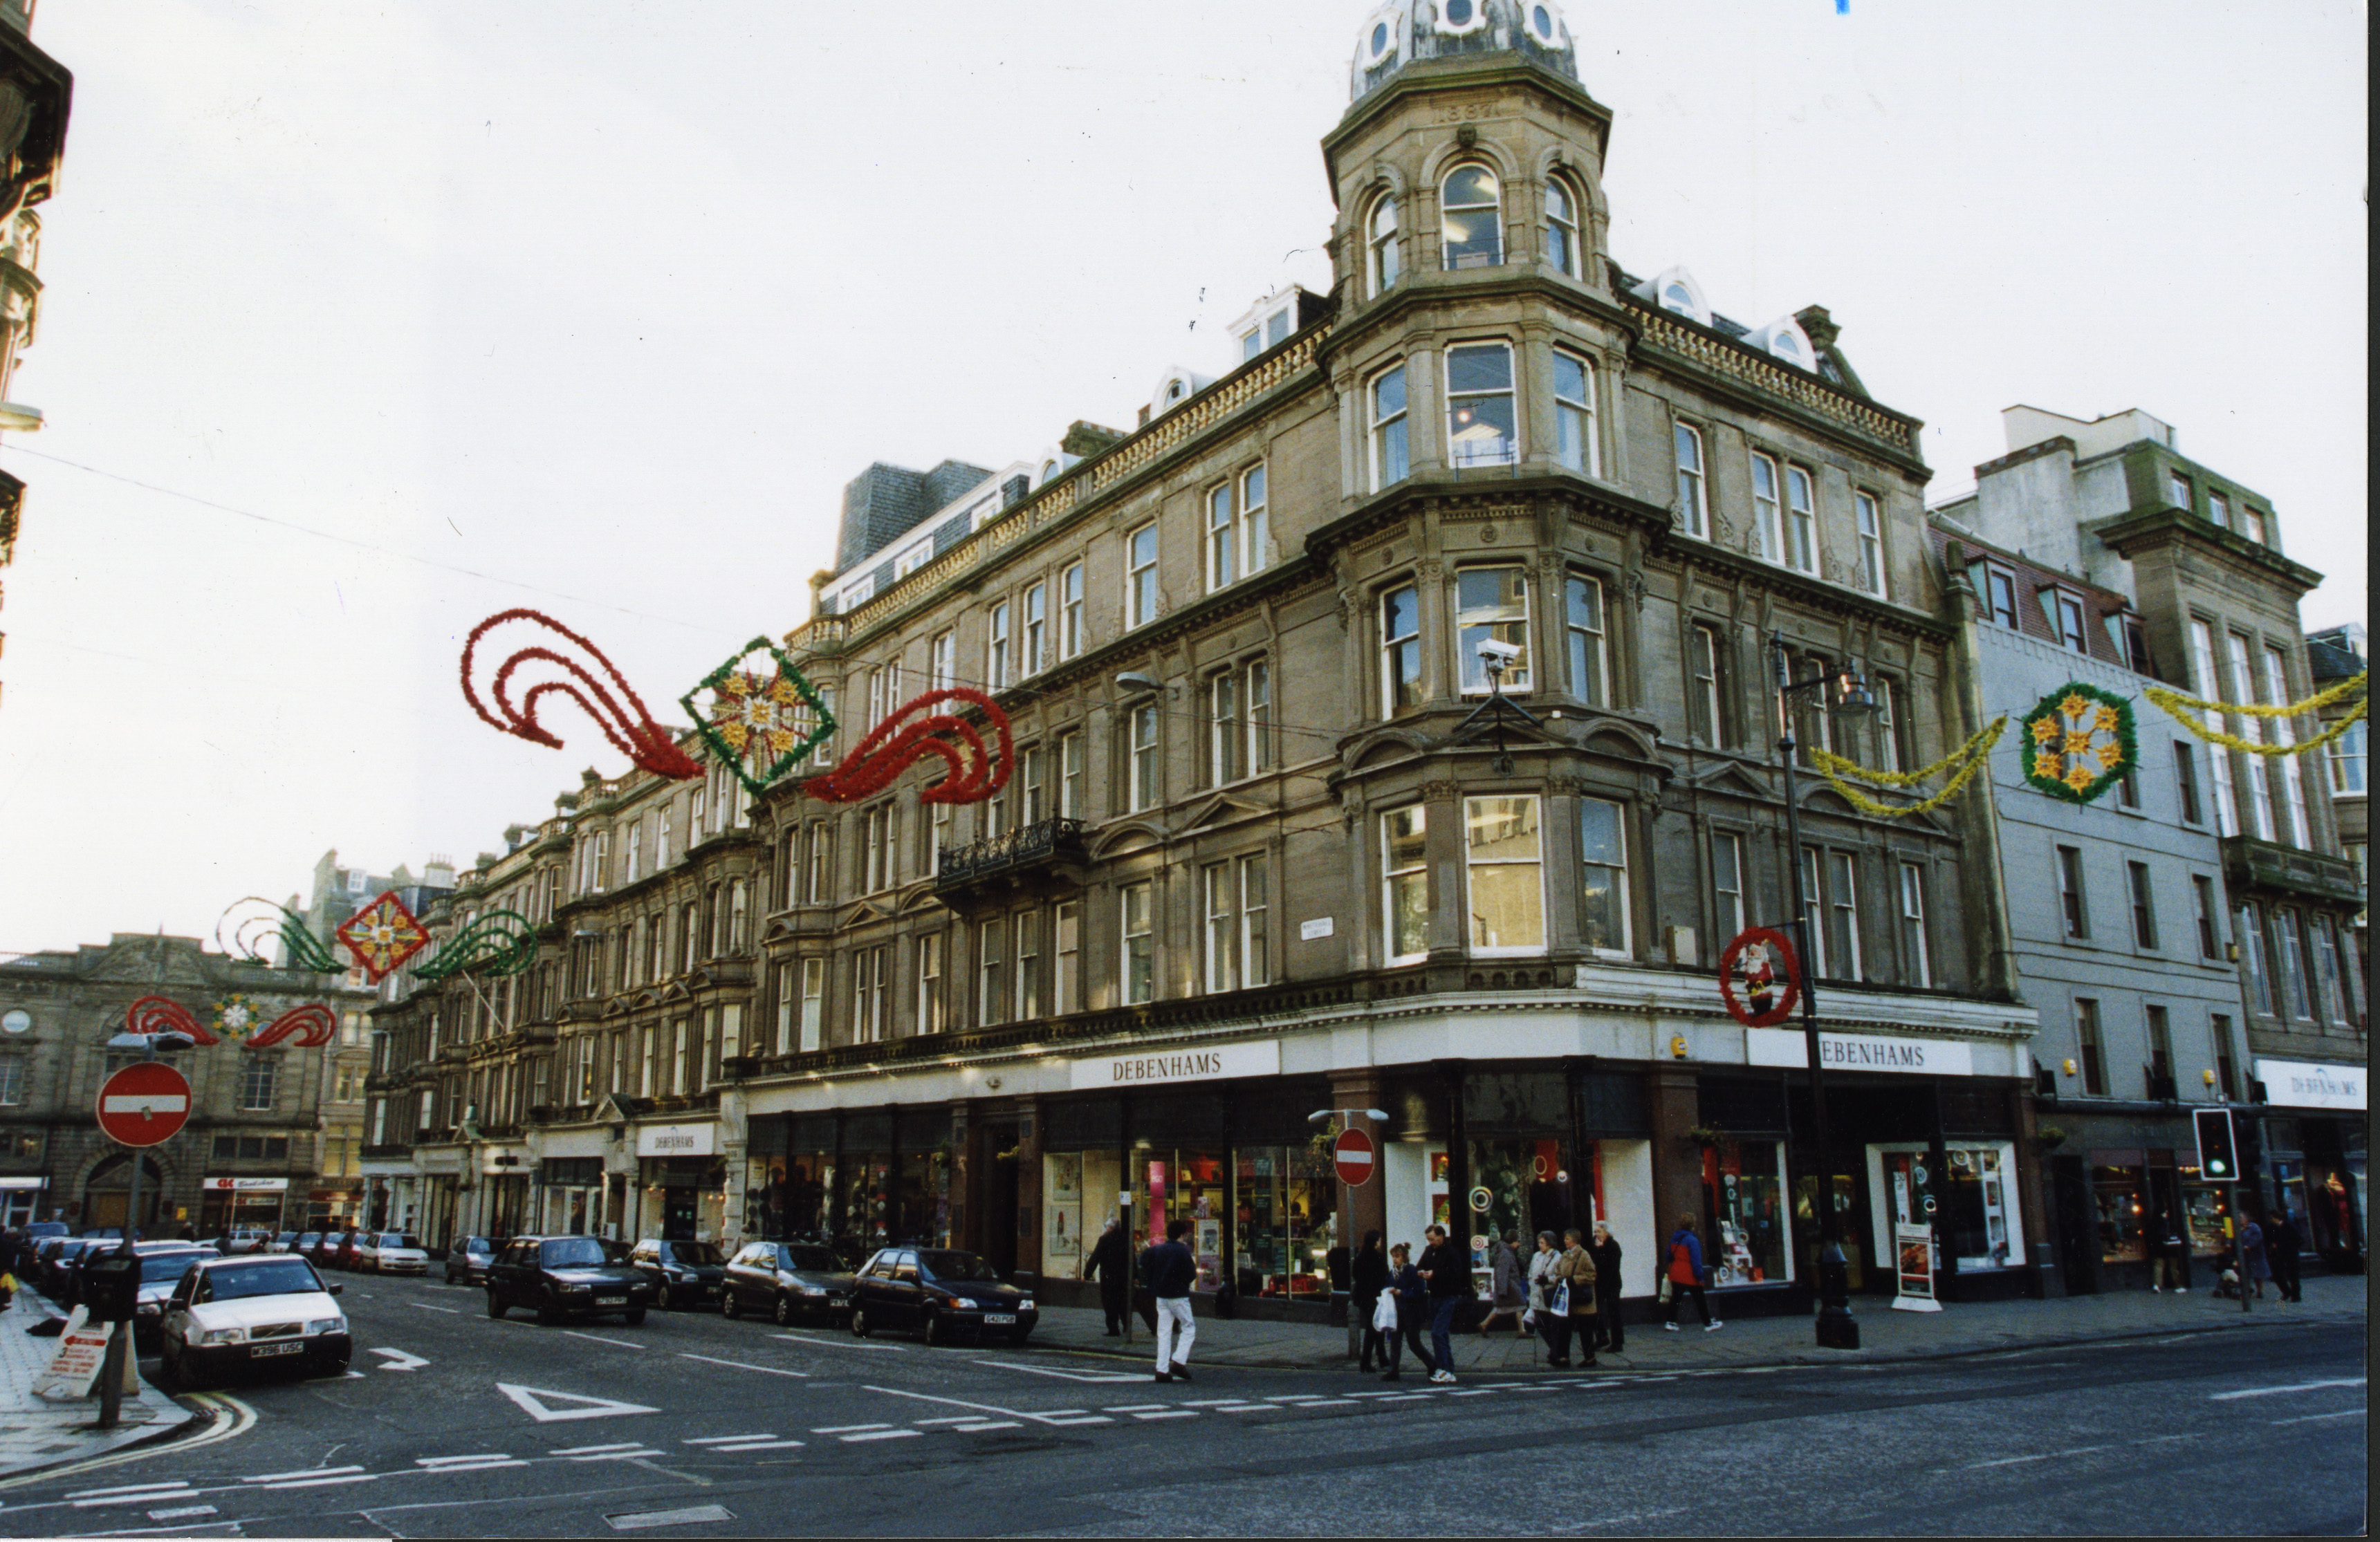 The former Draffens department store, seen here when it was Debenhams in 1999.